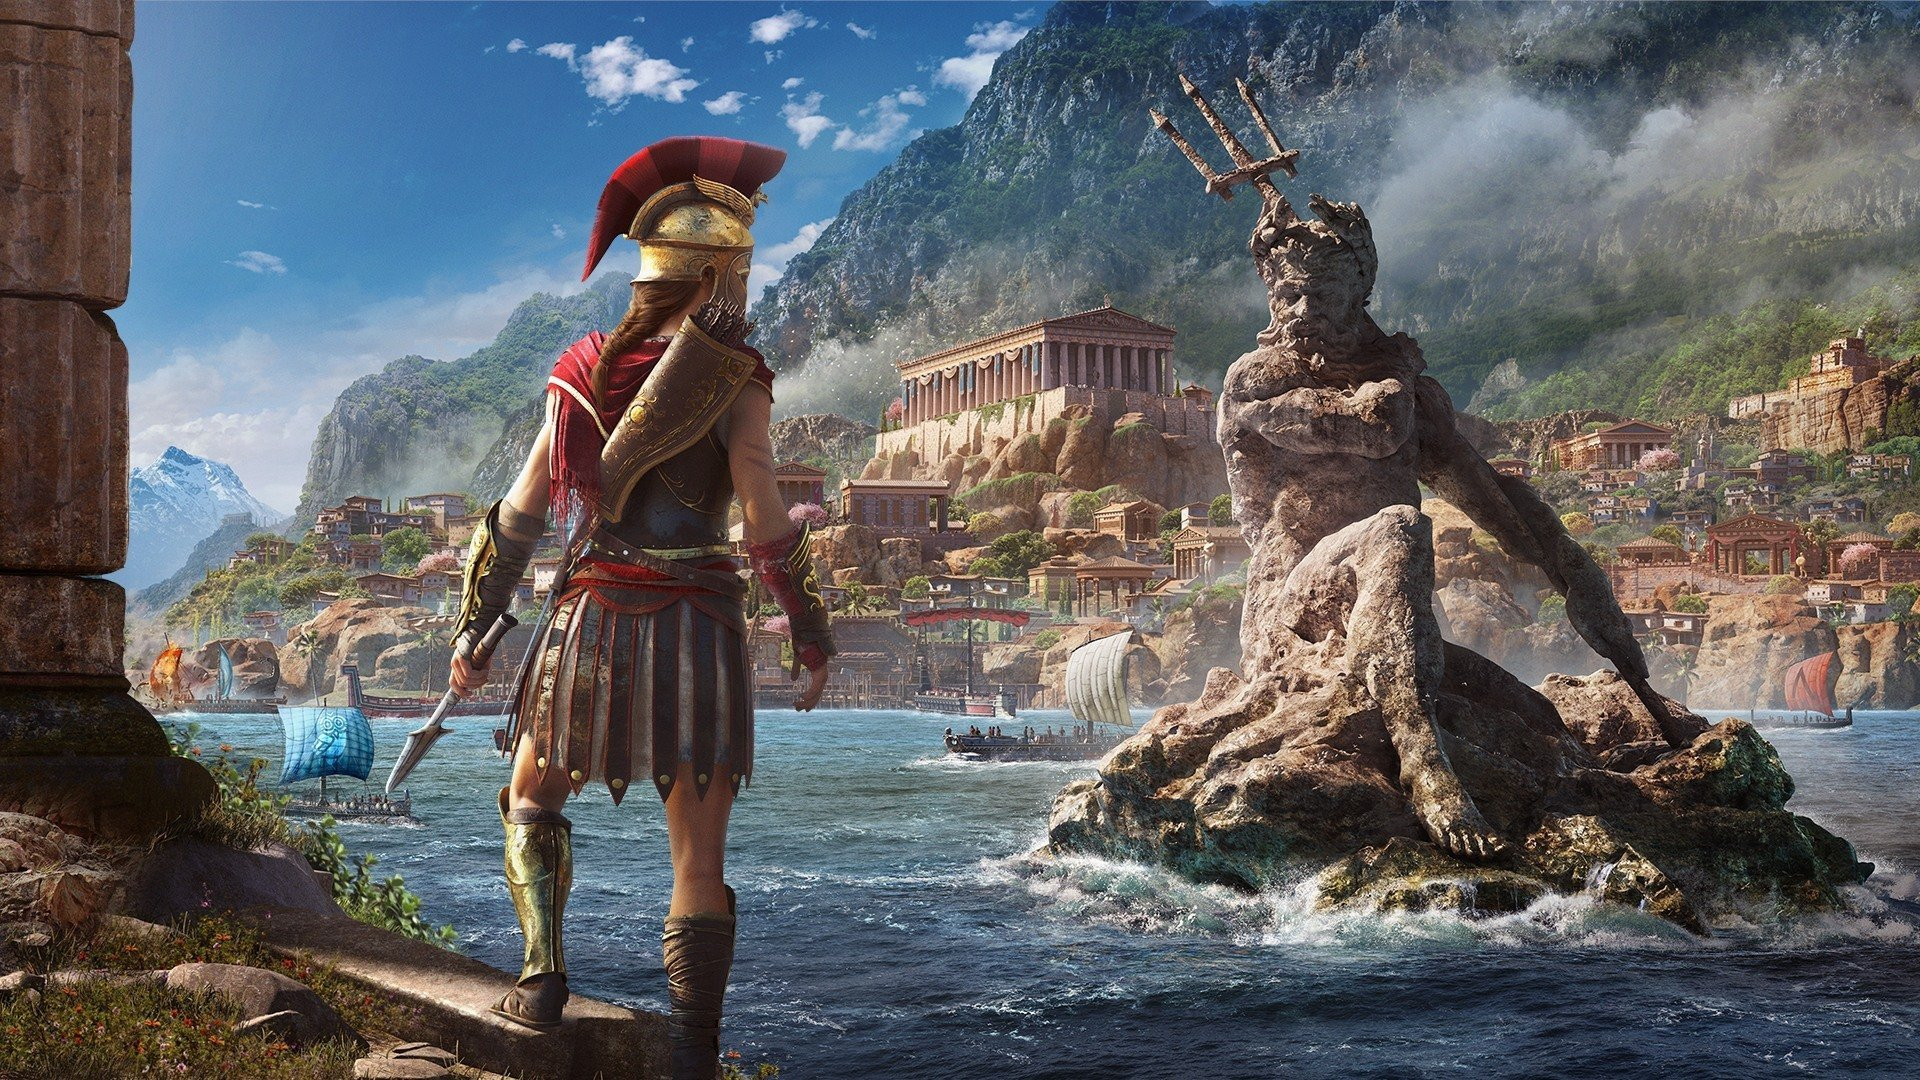 What does Misthios mean in Assassin's Creed Odyssey